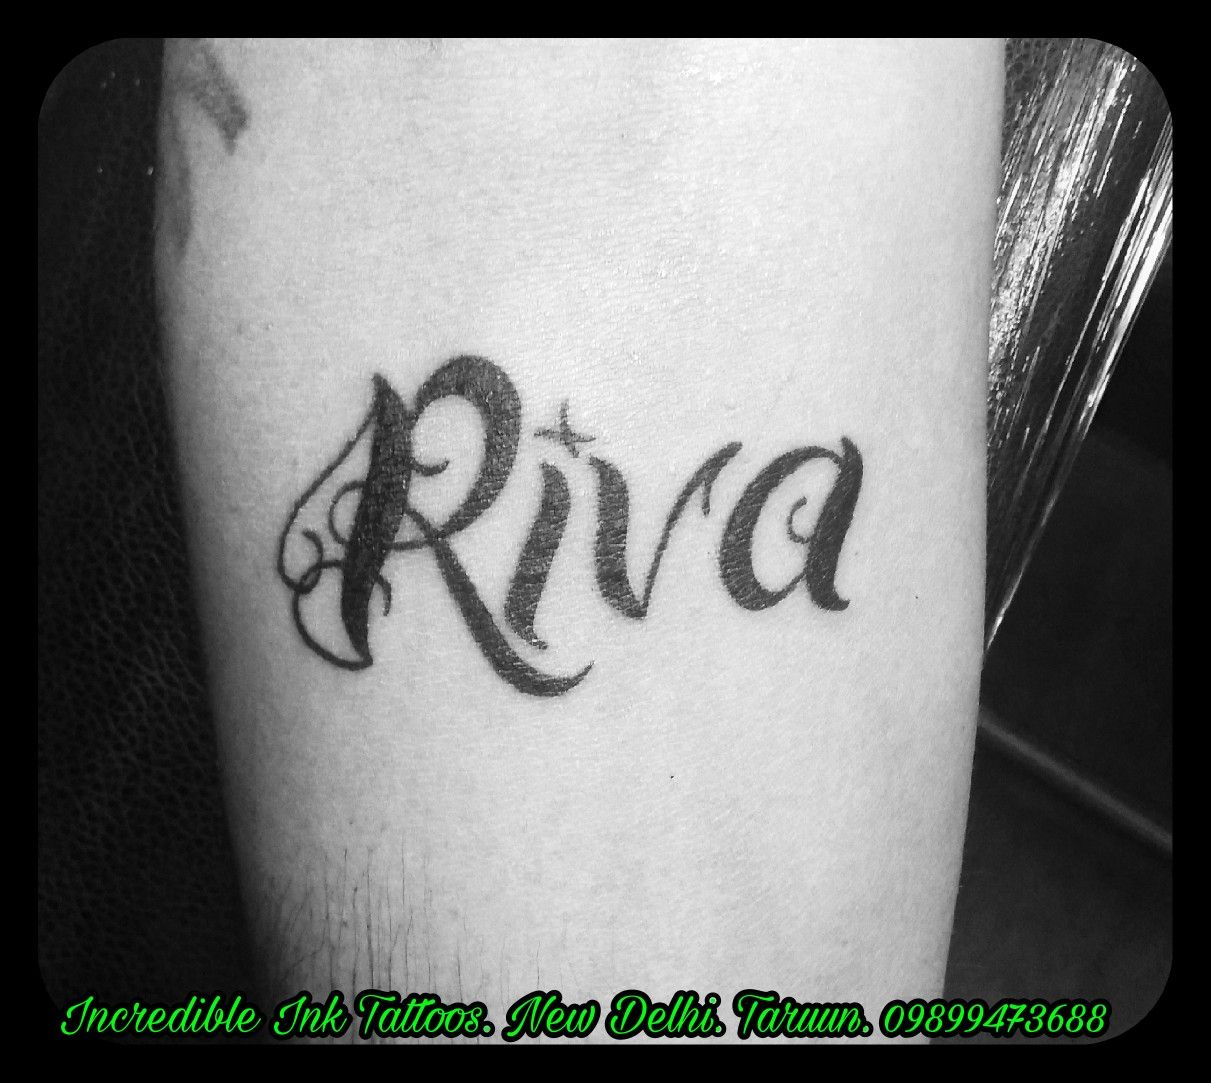 Riva Name Tattoo Call 09899473688 Tattoos Tattoo Quotes Ink